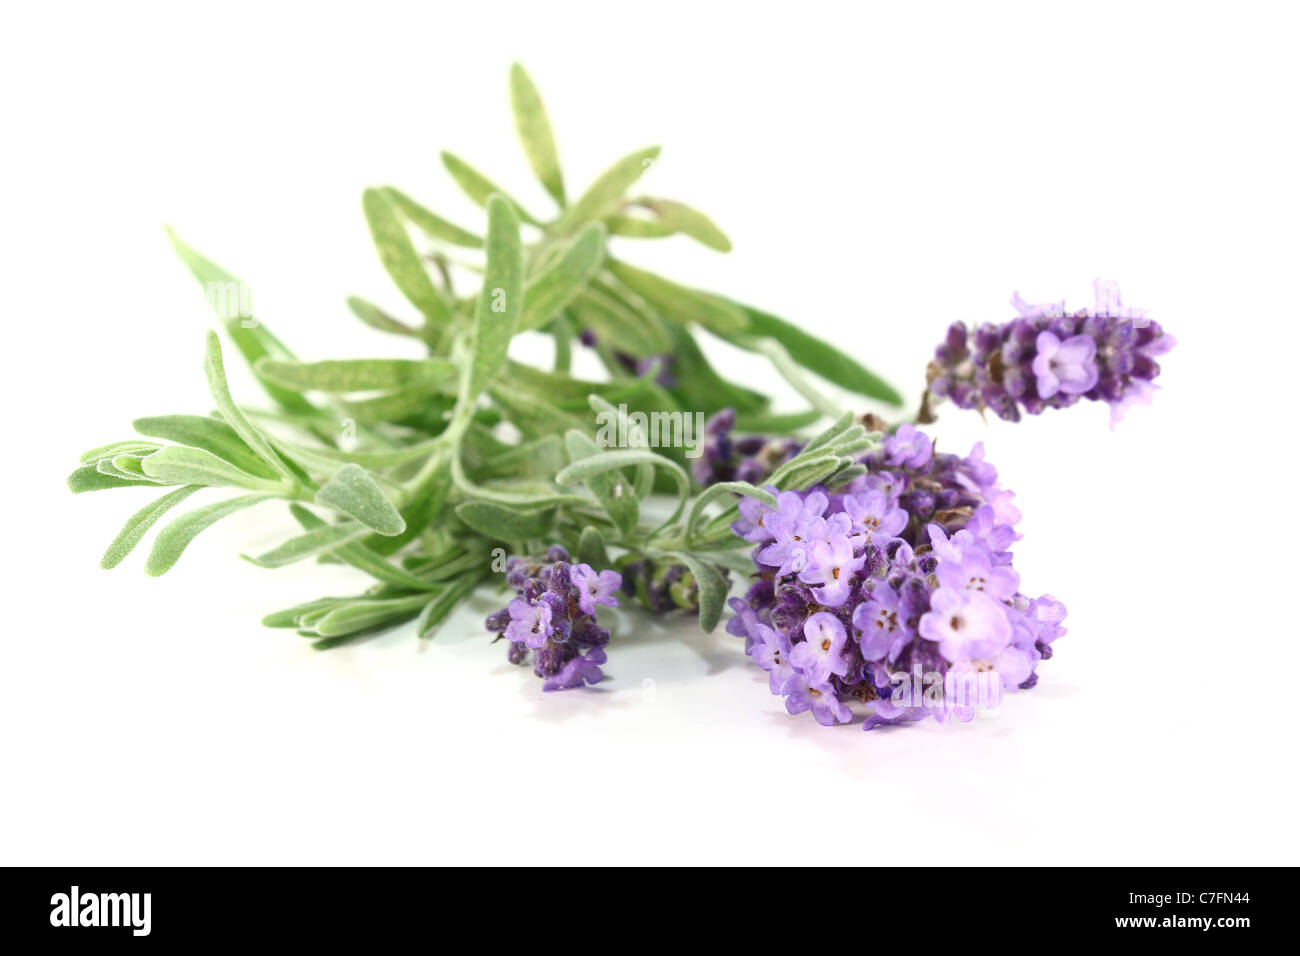 few branches with lavender flowers on a white background - Stock Image